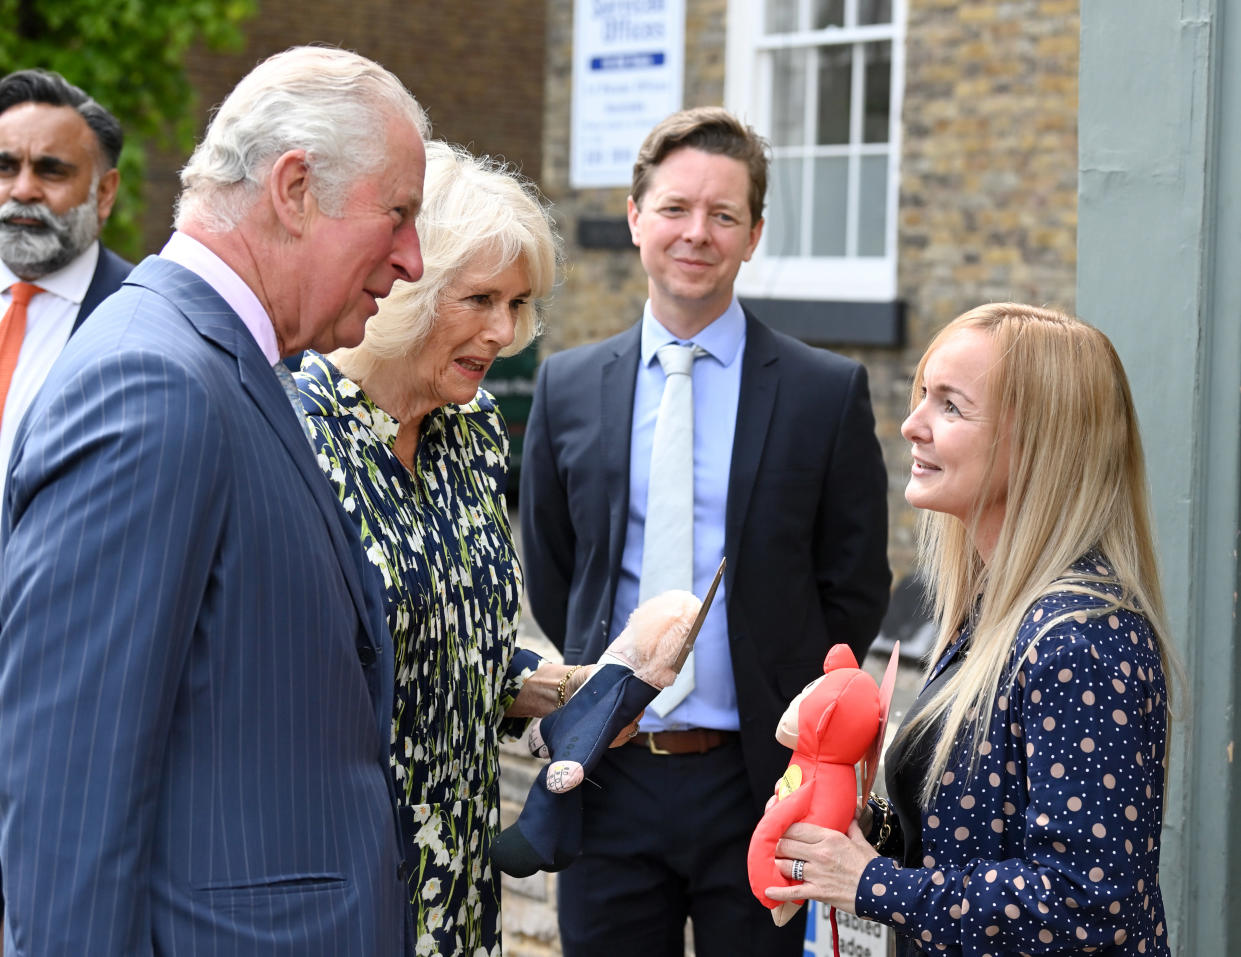 CLAPHAM, ENGLAND - MAY 27: Prince Charles, Prince of Wales and Camilla, Duchess of Cornwall who gets presented with a Boris Johnson dog toy during a visit to Clapham old town on May 27, 2021 in Clapham, England. (Photo by Karwai Tang/WireImage)